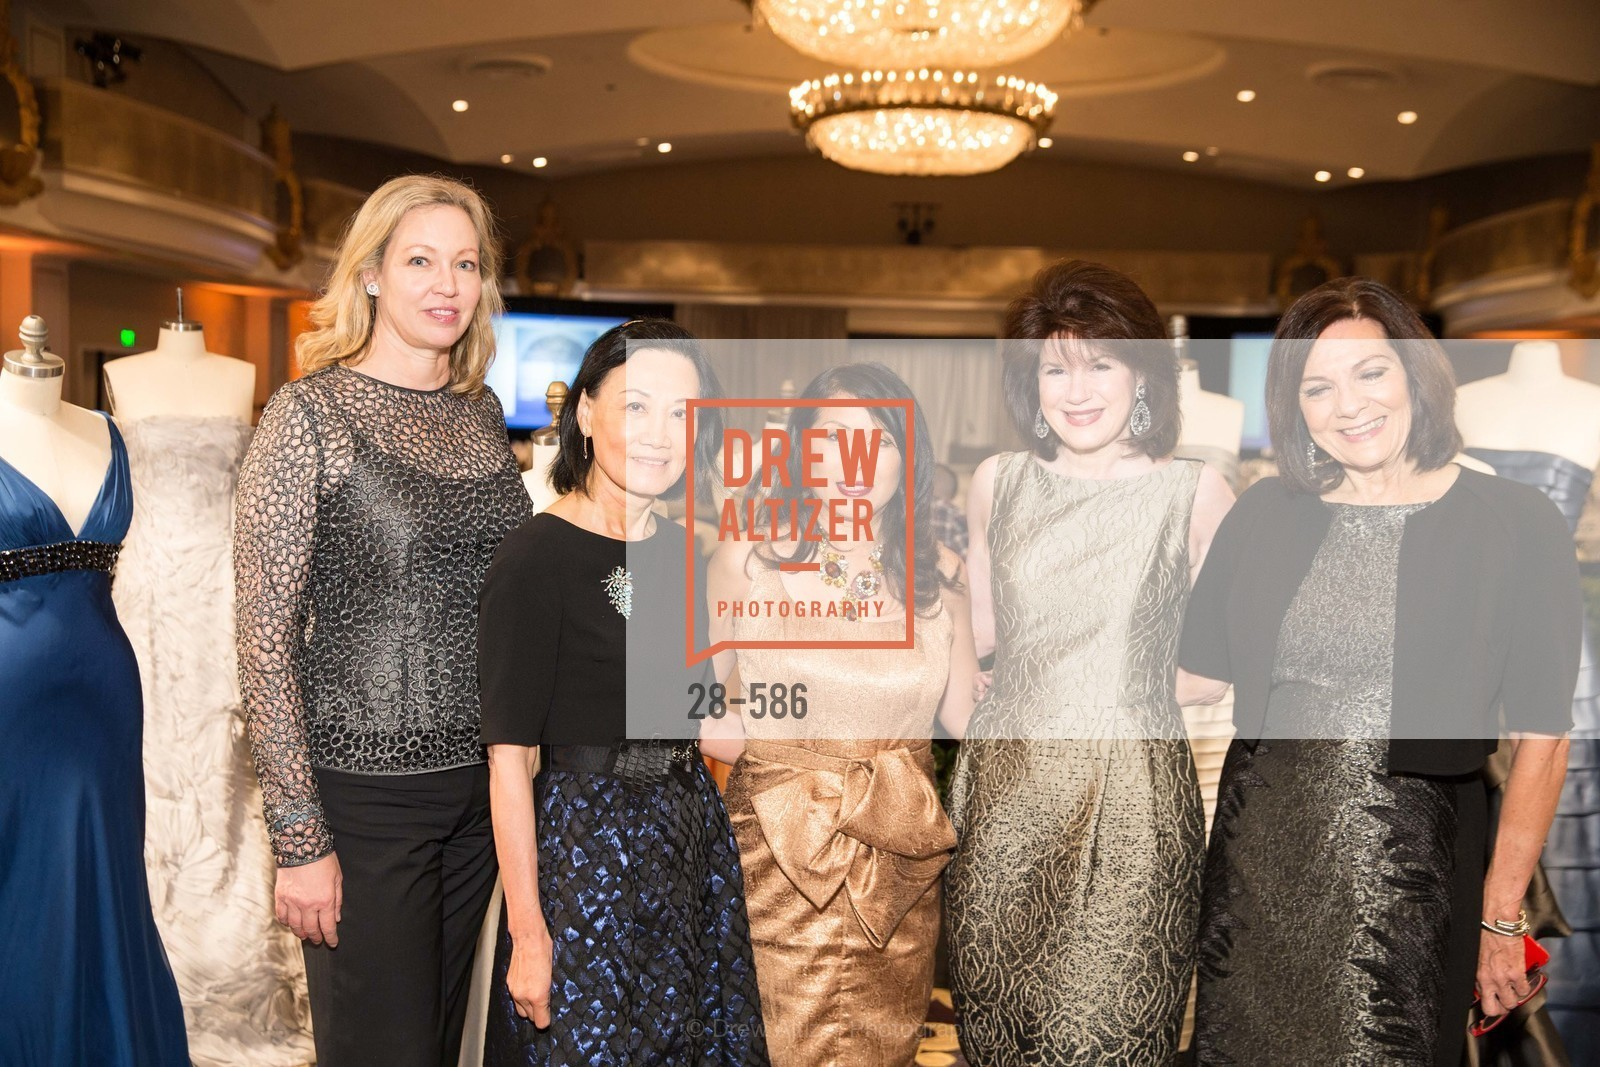 Betsy Vobach, Iris Chan, Sharon Seto, Elaine Mellis, Pamela Culp, 2014 Bay Area ARTHRITIS AUXILLIARY Benefit & Fashion Show, US, October 2nd, 2014,Drew Altizer, Drew Altizer Photography, full-service agency, private events, San Francisco photographer, photographer california